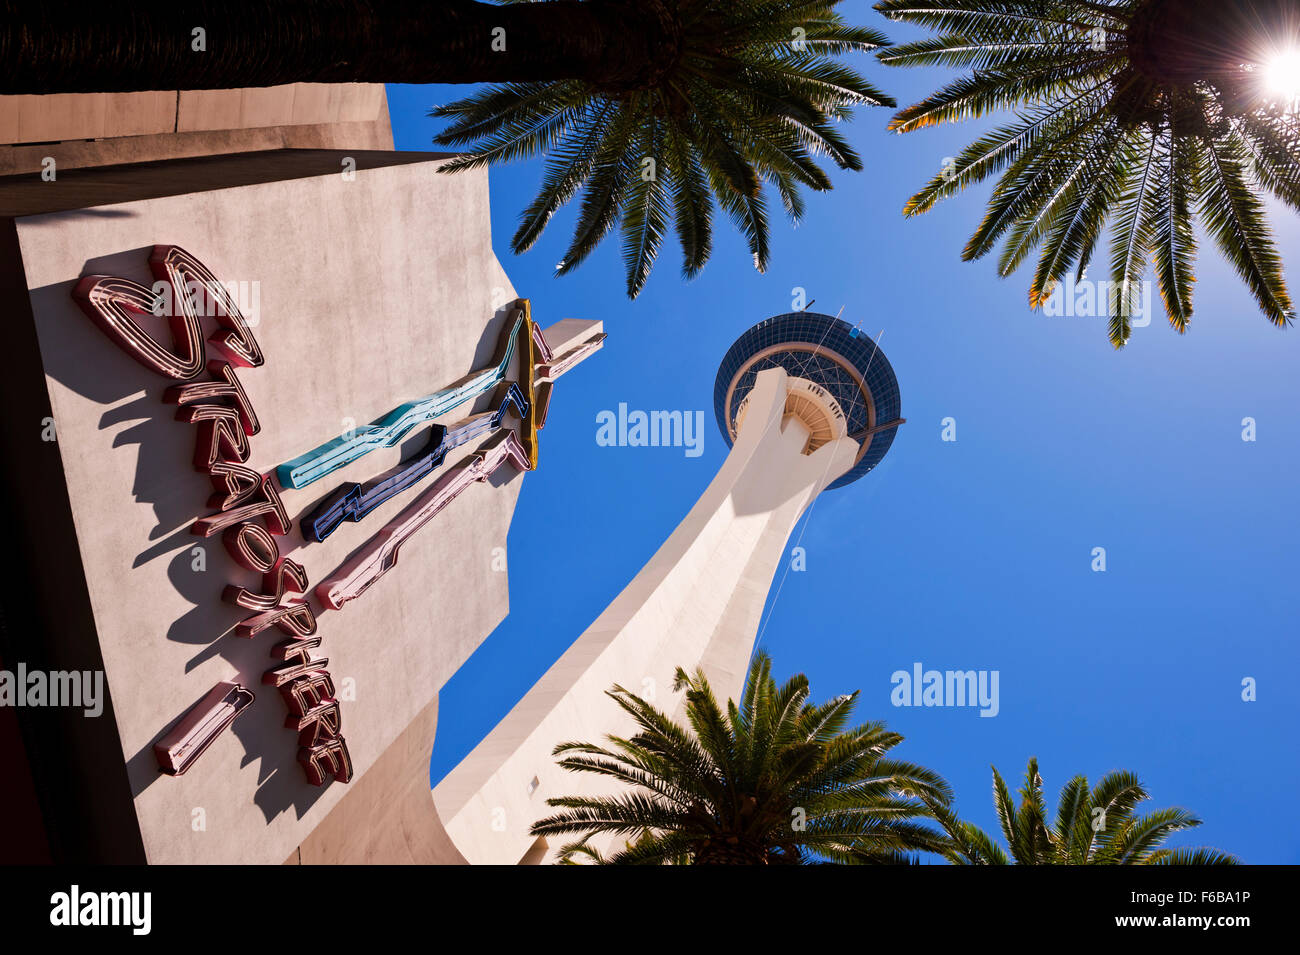 The Stratosphere Hotel and Casino in Las Vegas Nevada - Stock Image